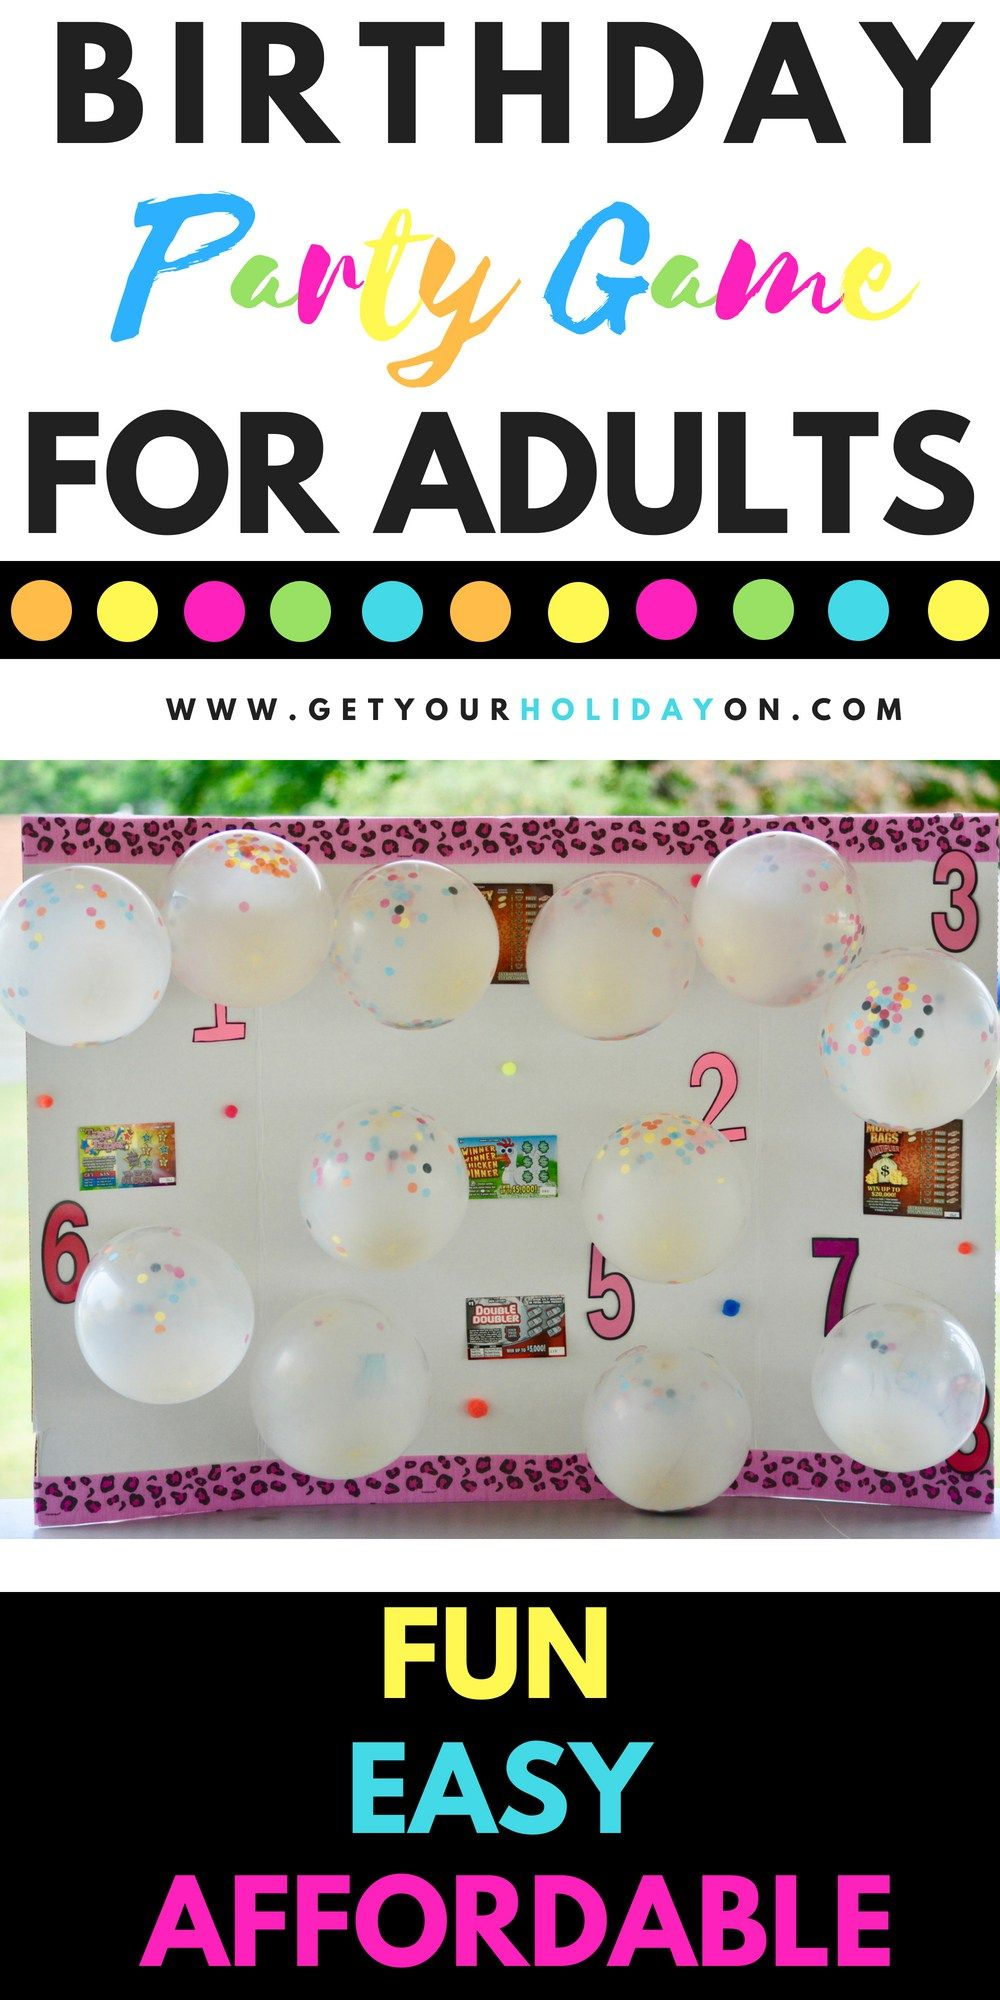 Simple DIY Party Game For Adults 50th birthday party